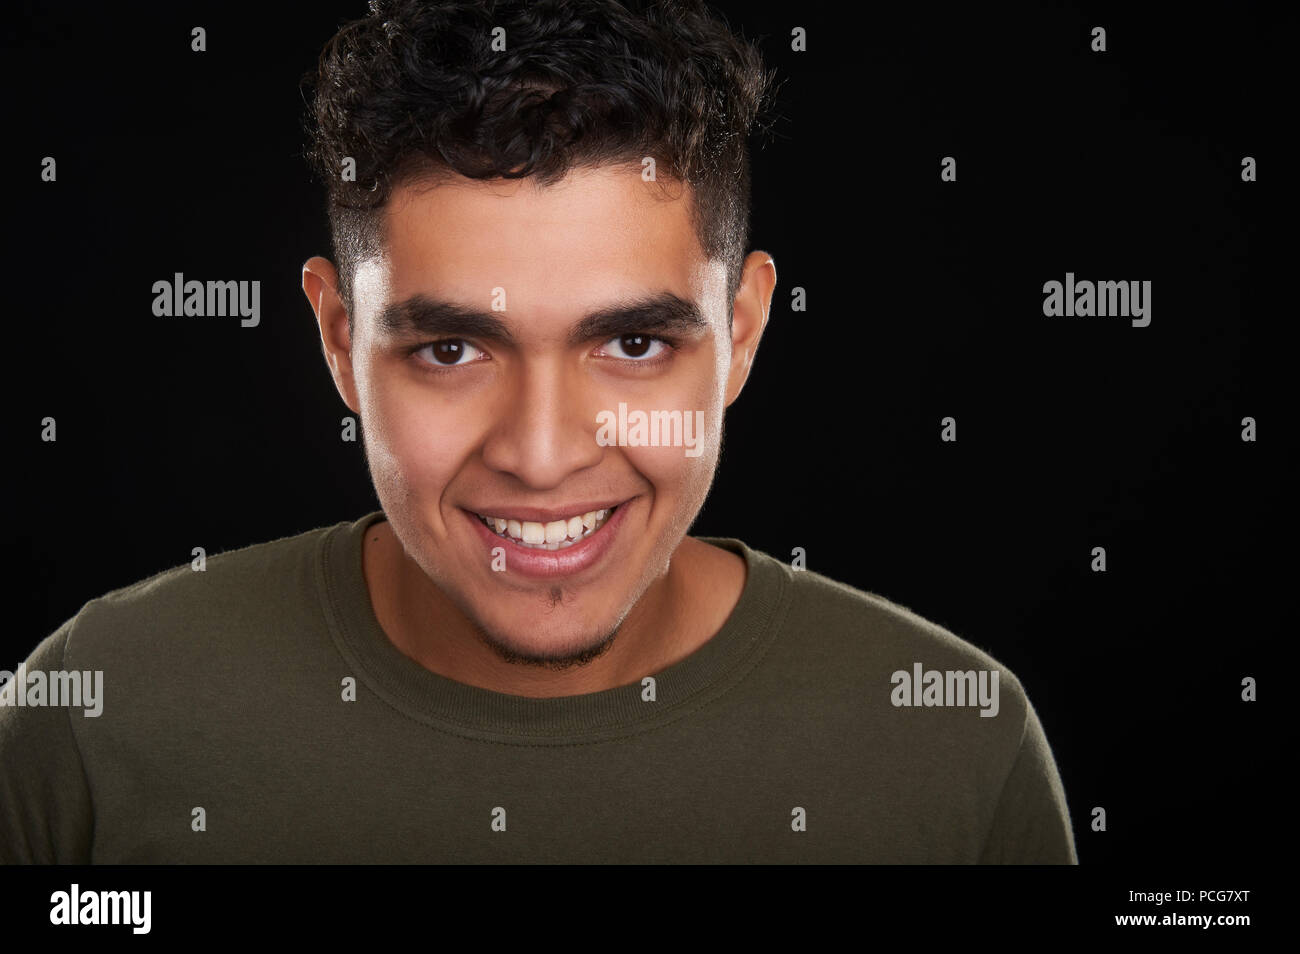 Studio portrait of a 19 years old young man, smiling - Stock Image